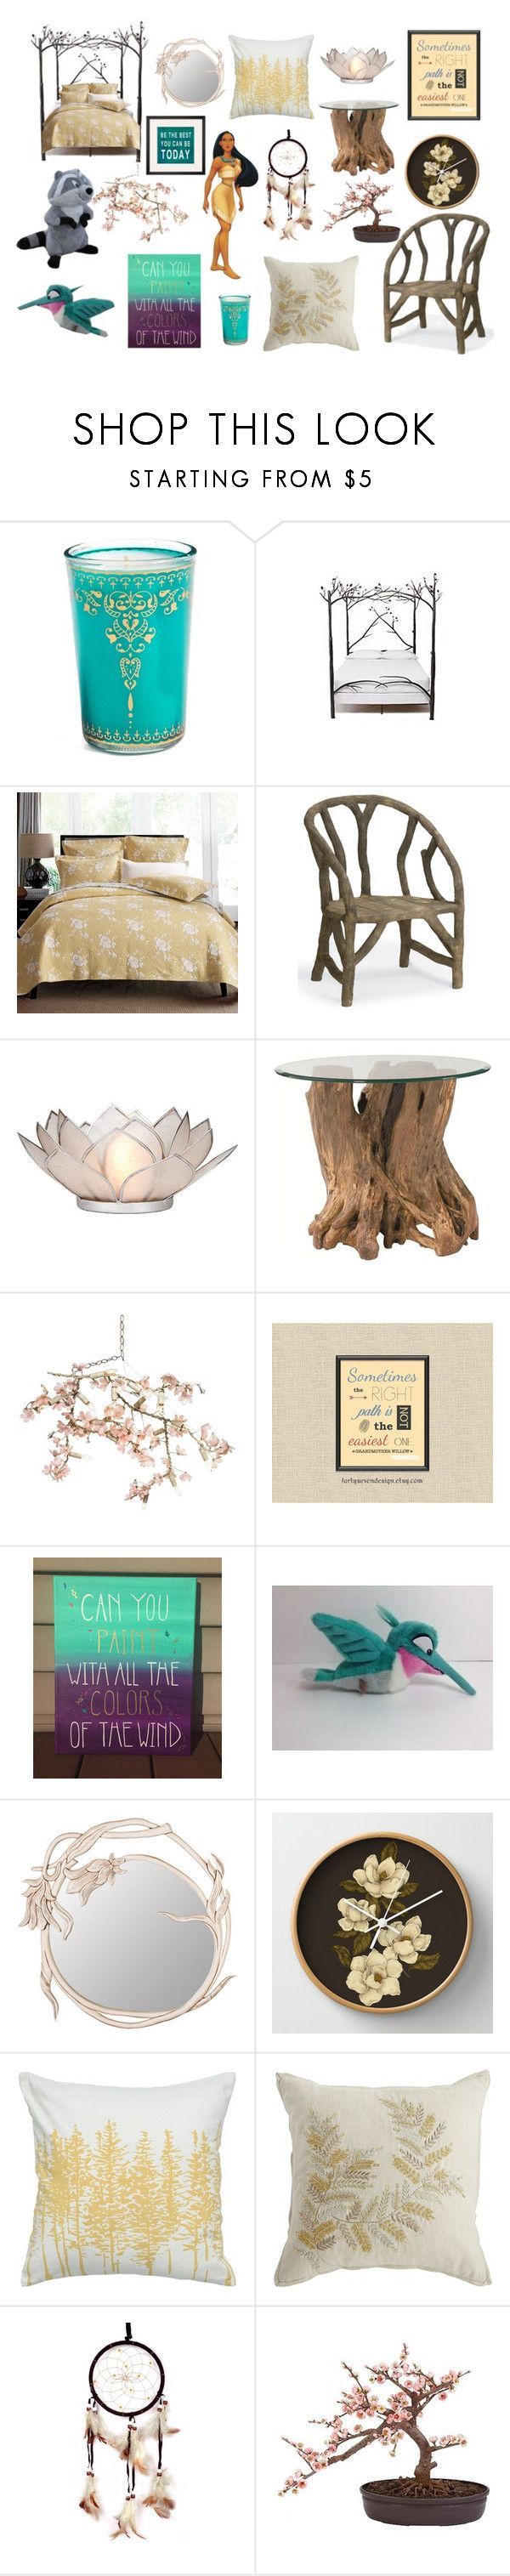 """Pocahontas Inspired Bedroom"" by madalynkw ❤ liked on Polyvore featuring interior, interiors, interior design, home, home decor, interior decorating, Market Street Candles, Anthropologie, Currey & Company and Cultural Intrigue"